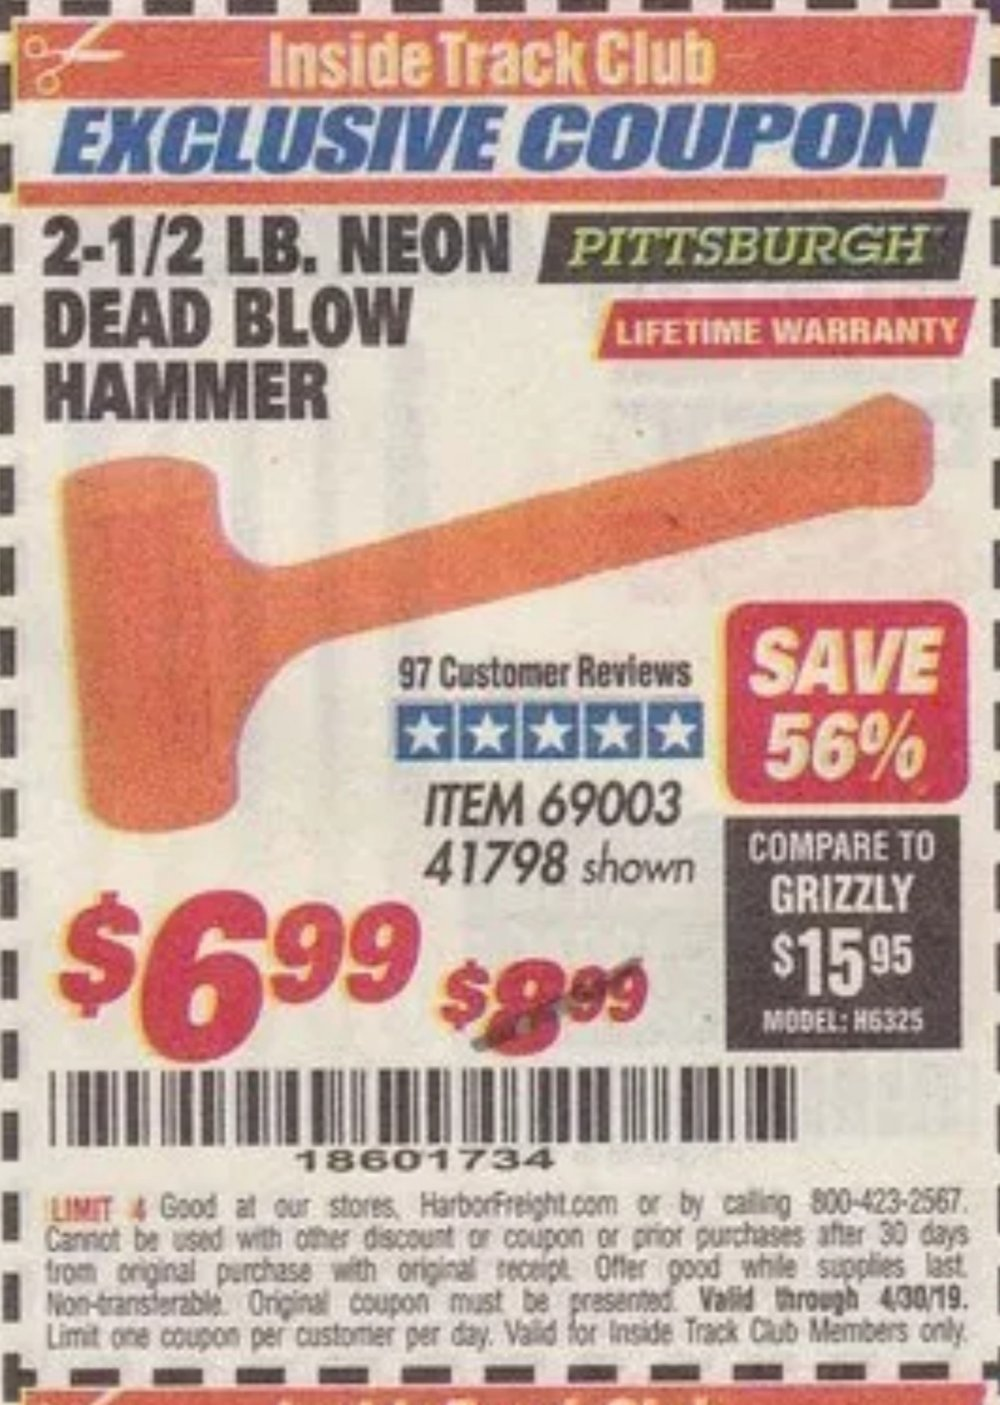 Harbor Freight Coupon, HF Coupons - 2-1/2 Lb. Neon Dead Blow Hammer